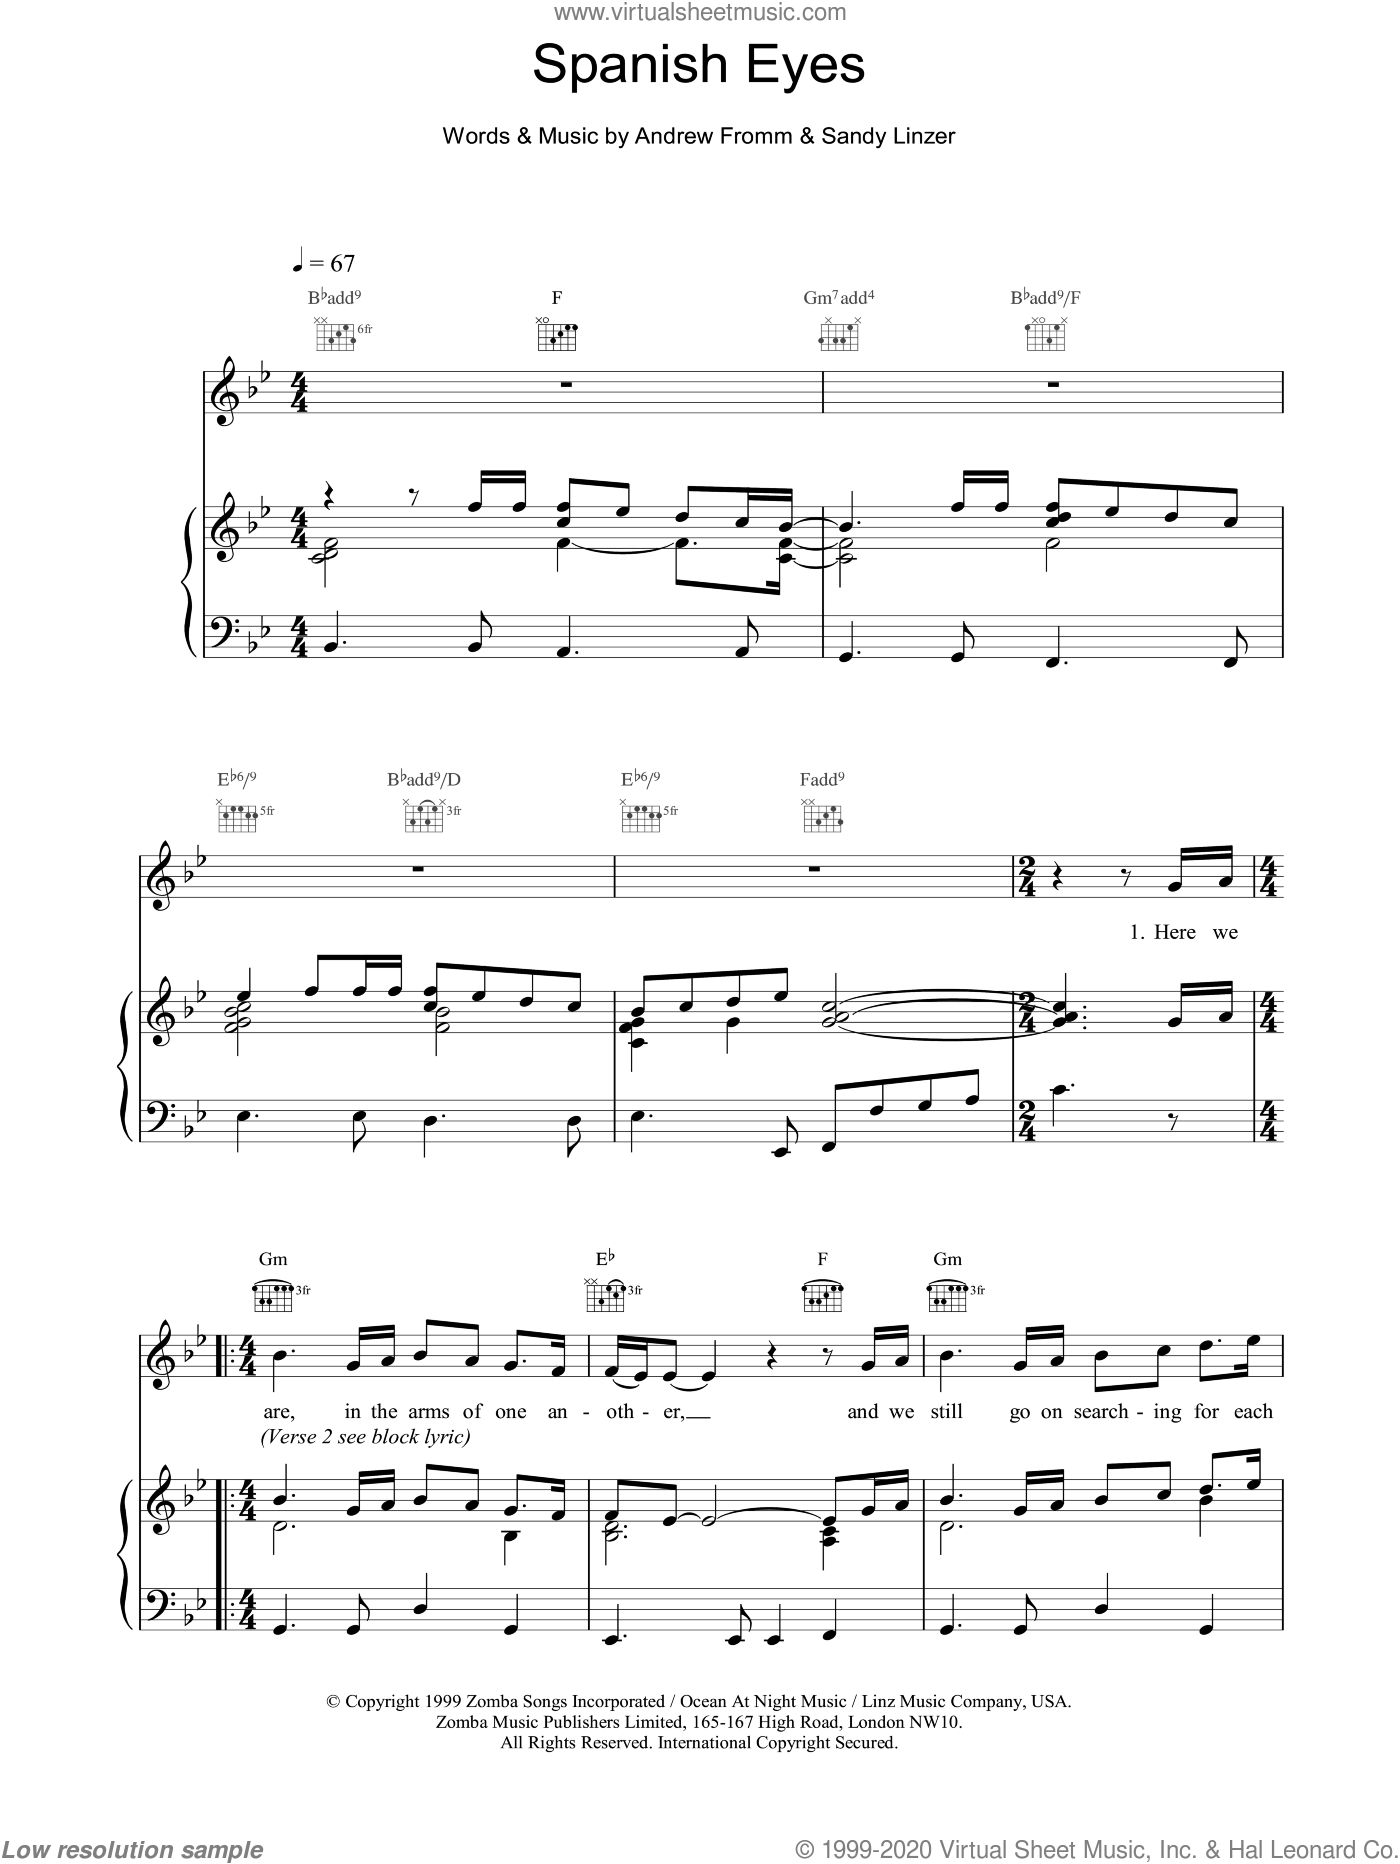 Spanish Eyes sheet music for voice, piano or guitar by Backstreet Boys, Andrew Fromm and Sandy Linzer, intermediate skill level